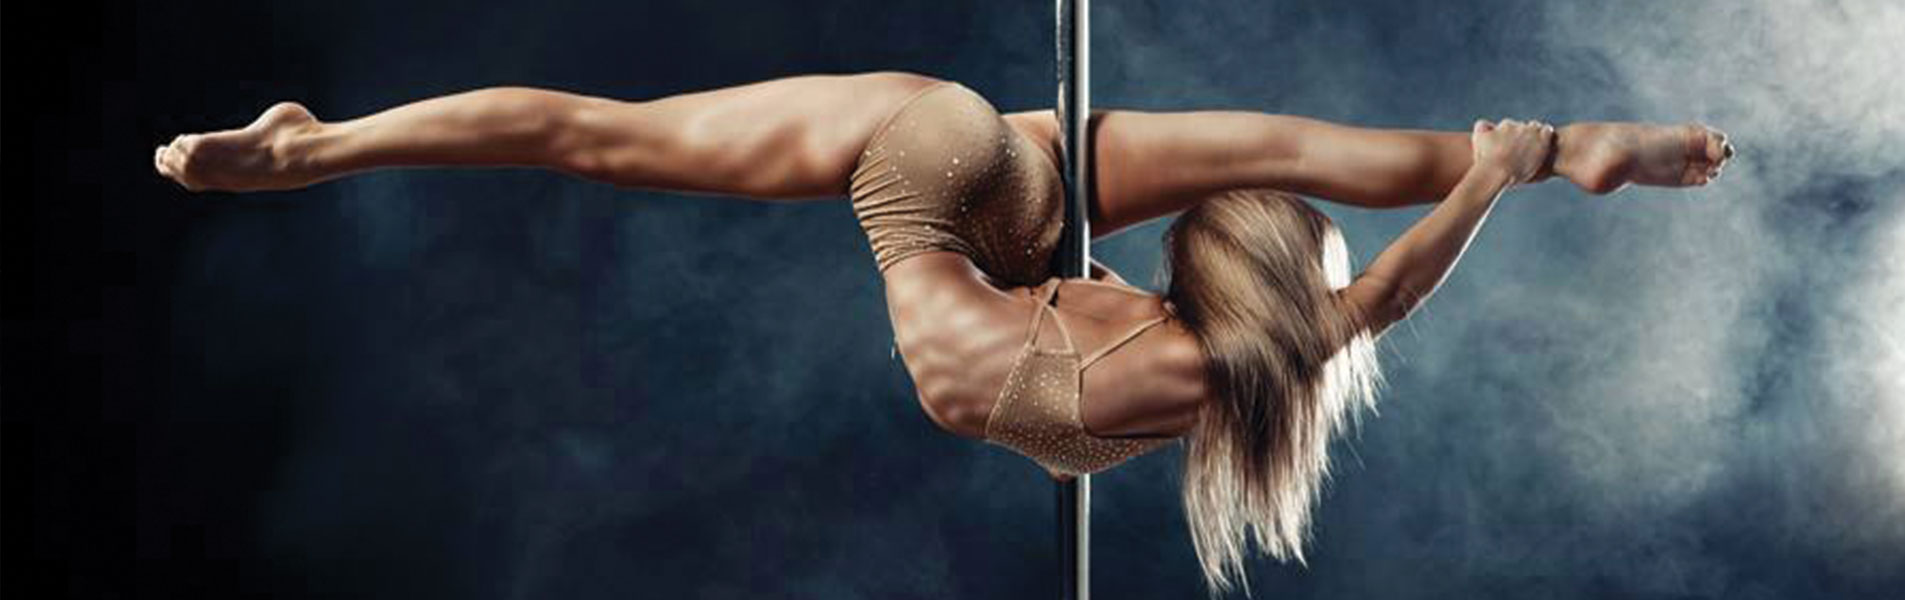 Pole dancing classes in edenvale johannesburg